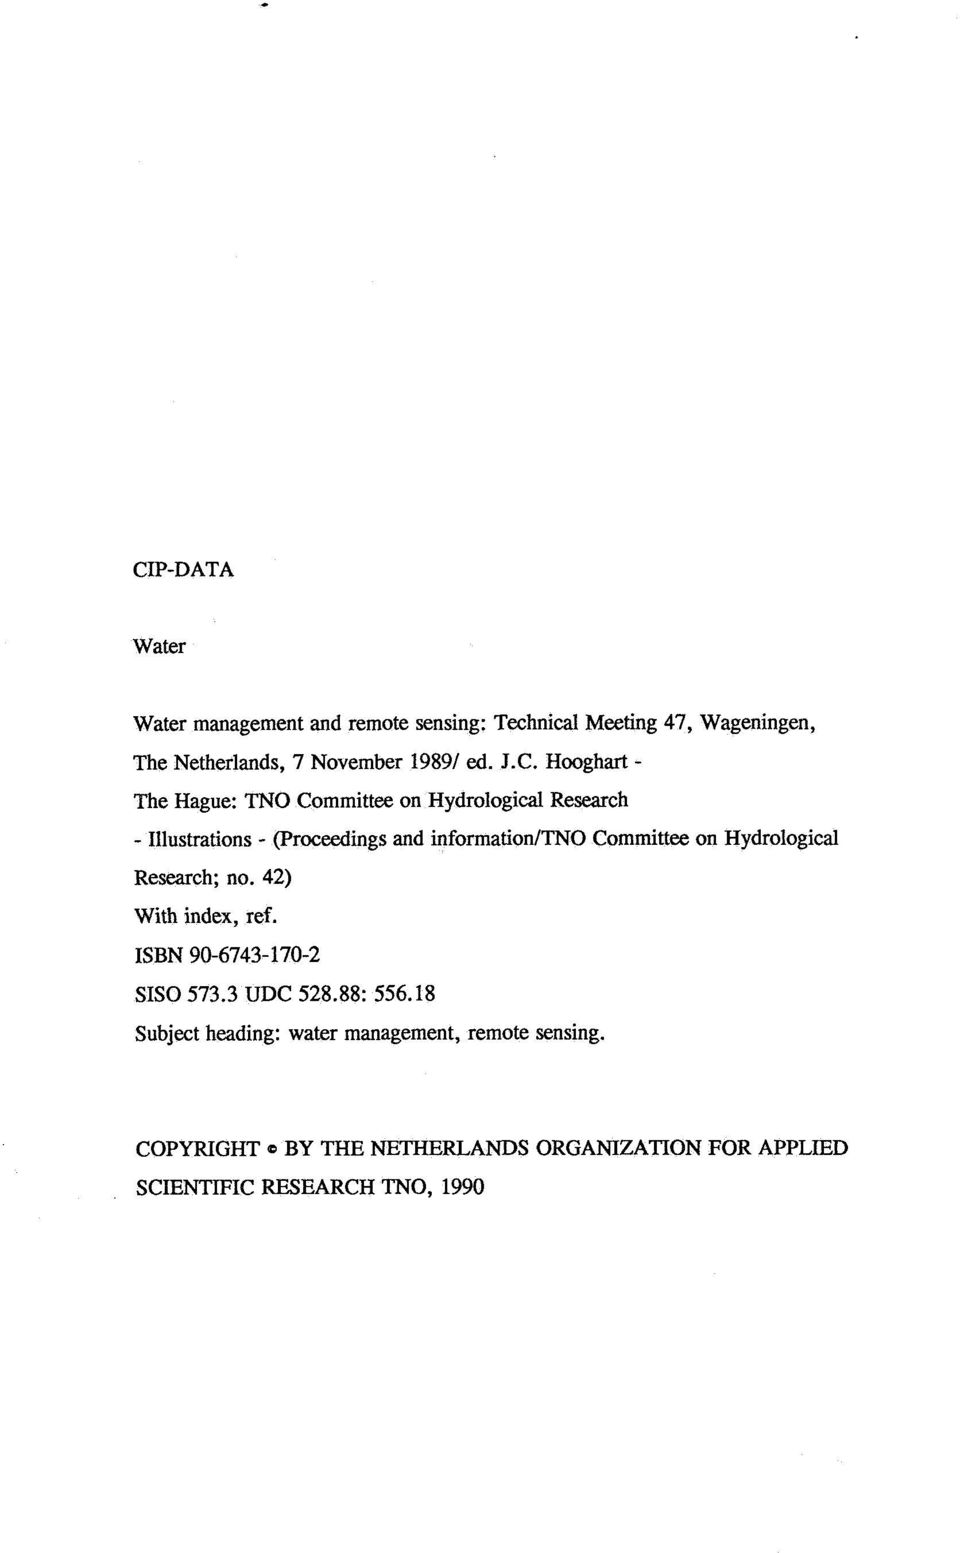 Hooghart - The Hague: TNO Committee on Hydrological Research - Illustrations - (Proceedings and informationitn0 Committee